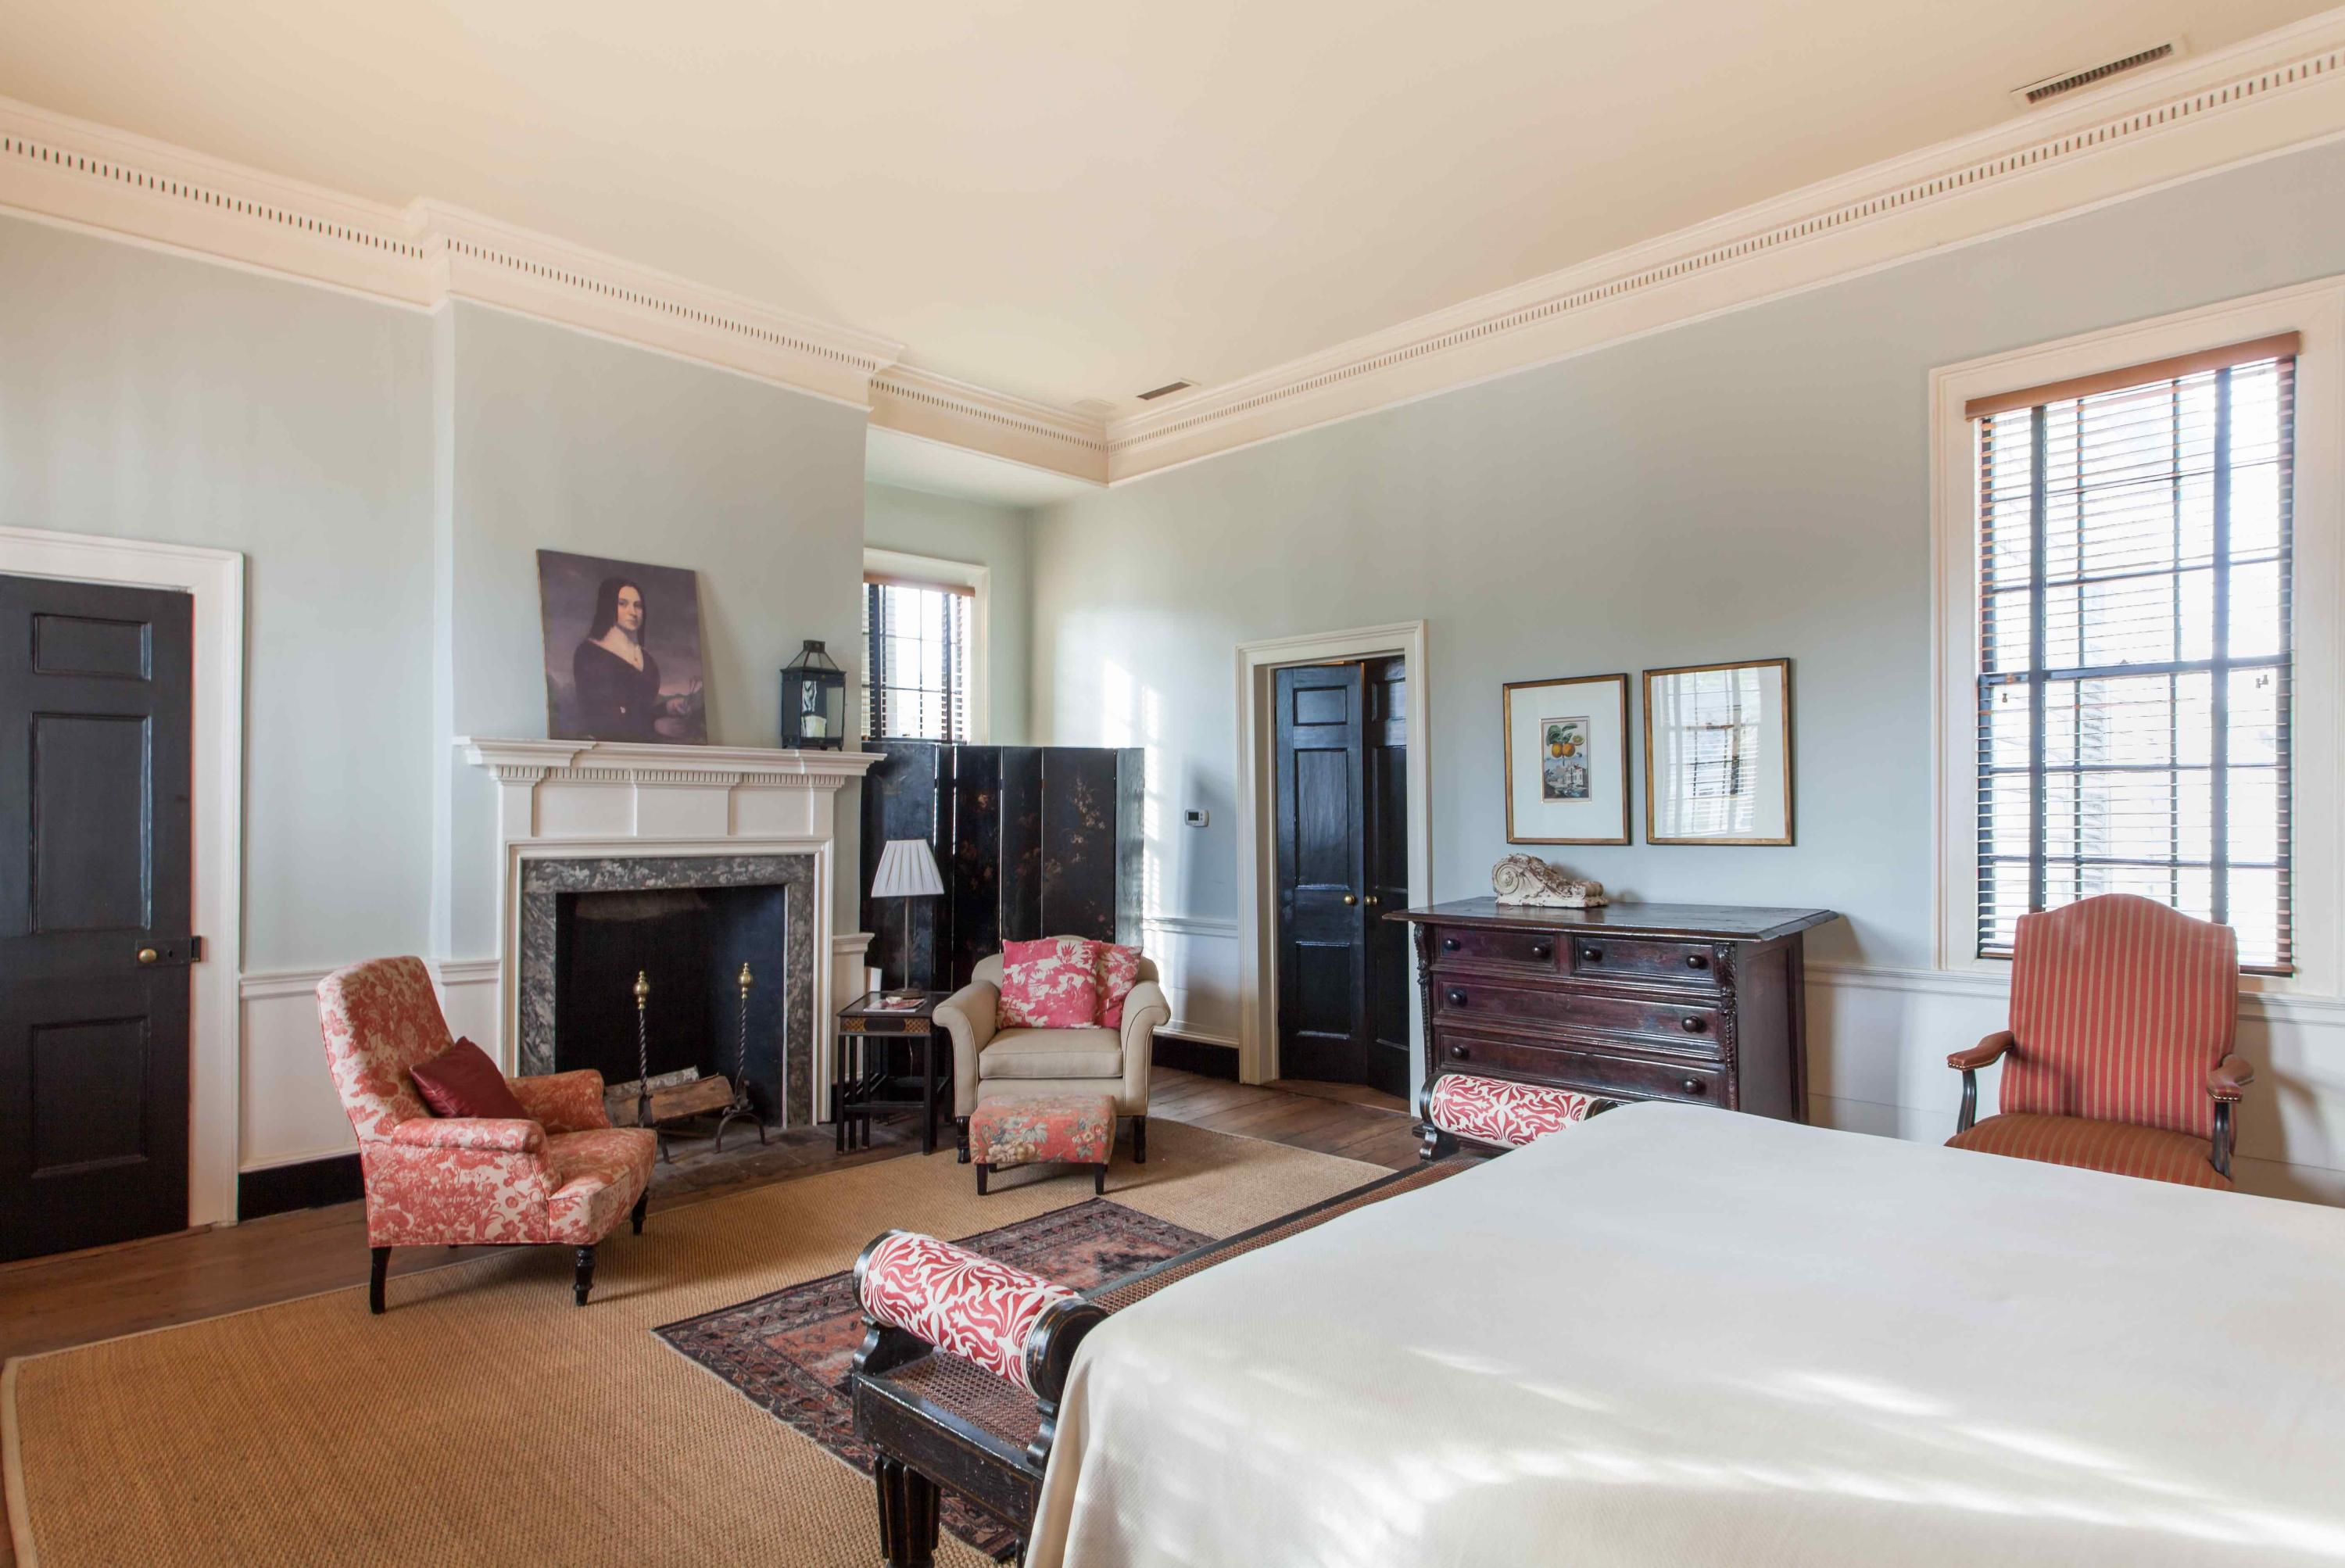 South of Broad Homes For Sale - 58 South Battery, Charleston, SC - 28